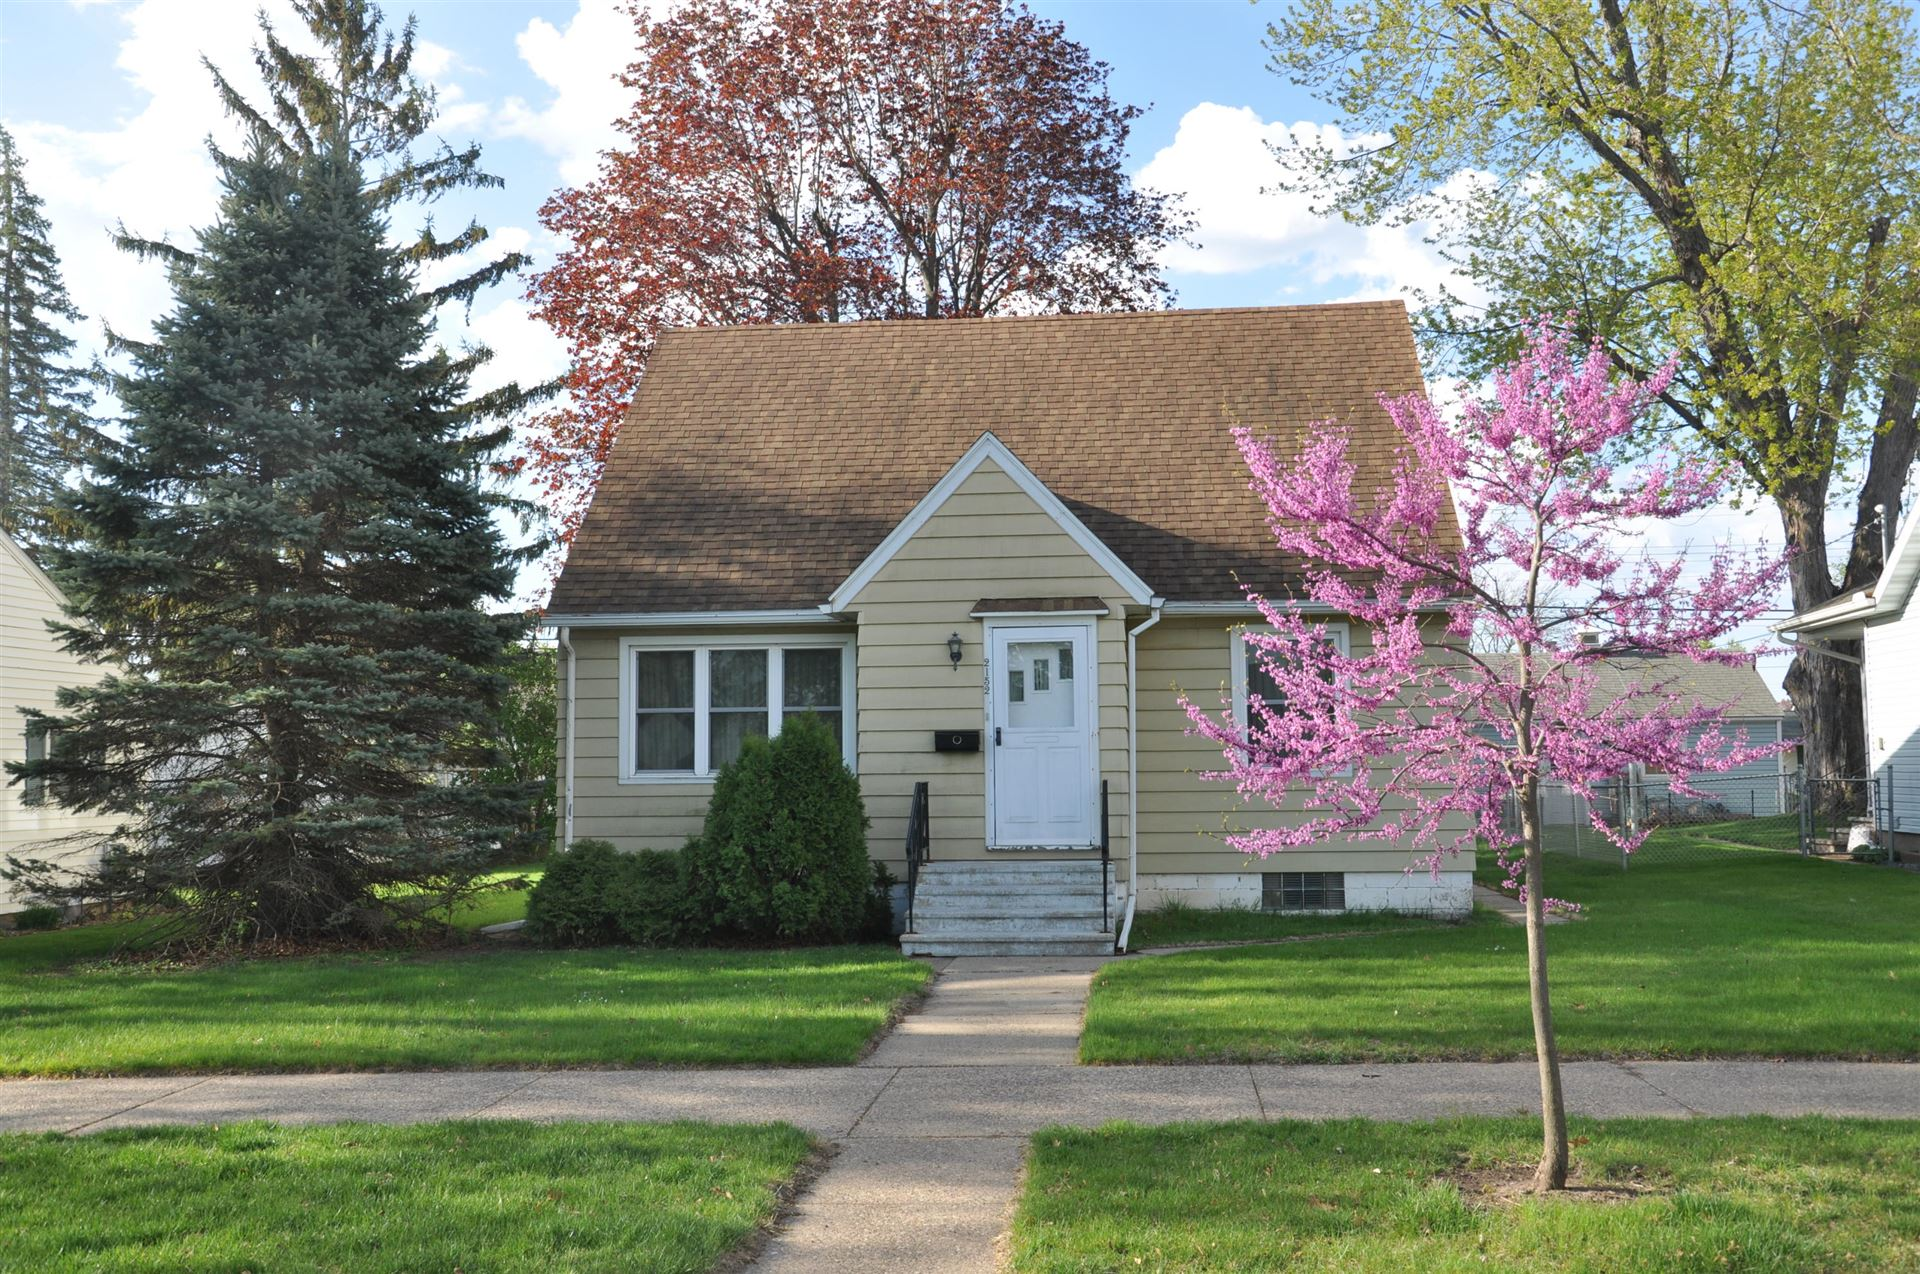 2152 Redfield St, La Crosse, WI 54601 - MLS#: 1738110